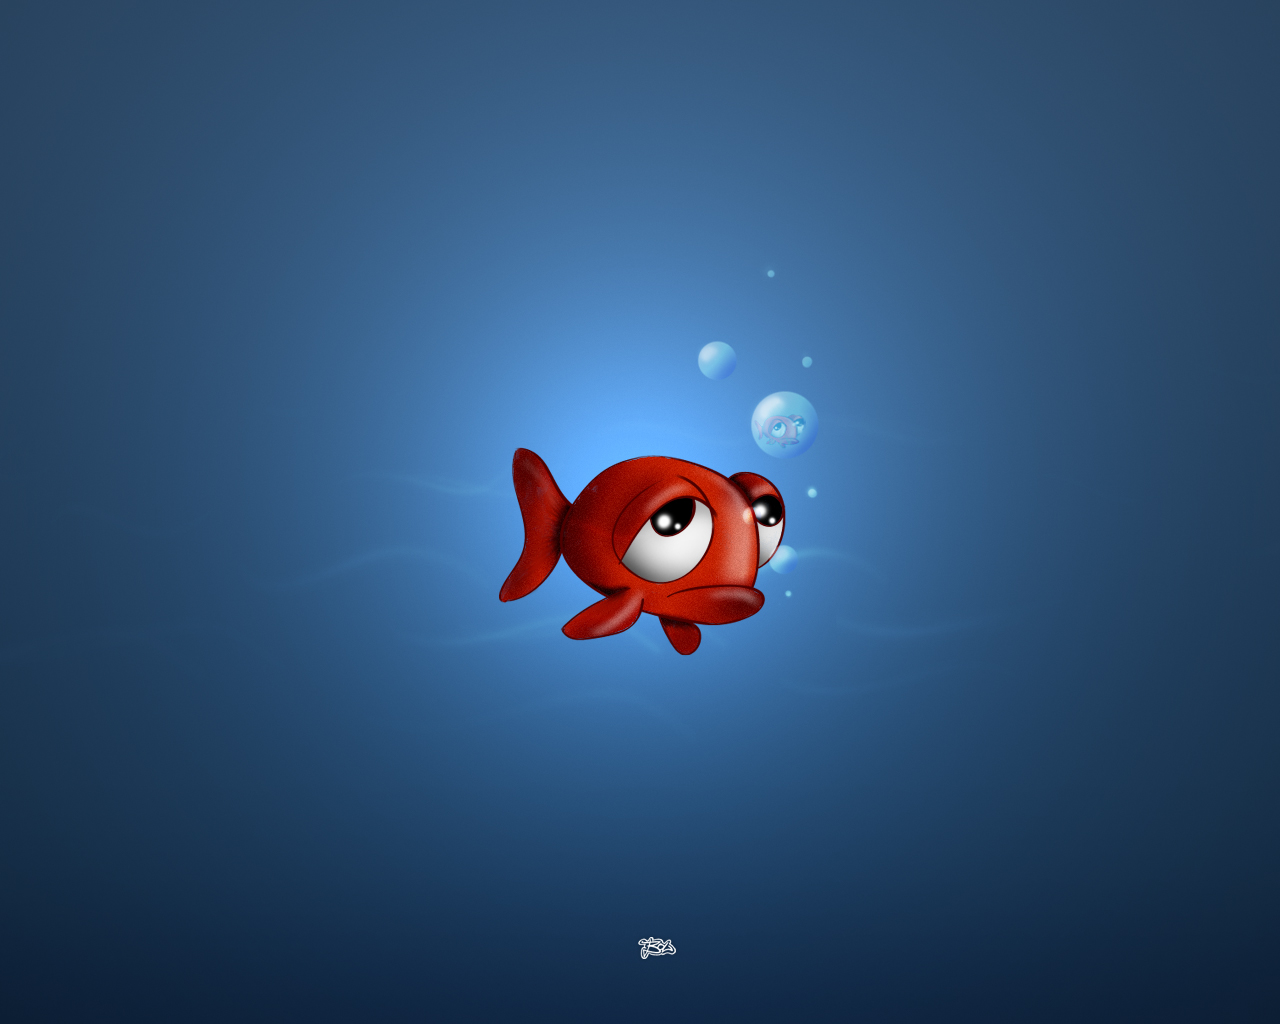 1280x1024 Sad fish desktop wallpapers and stock photos